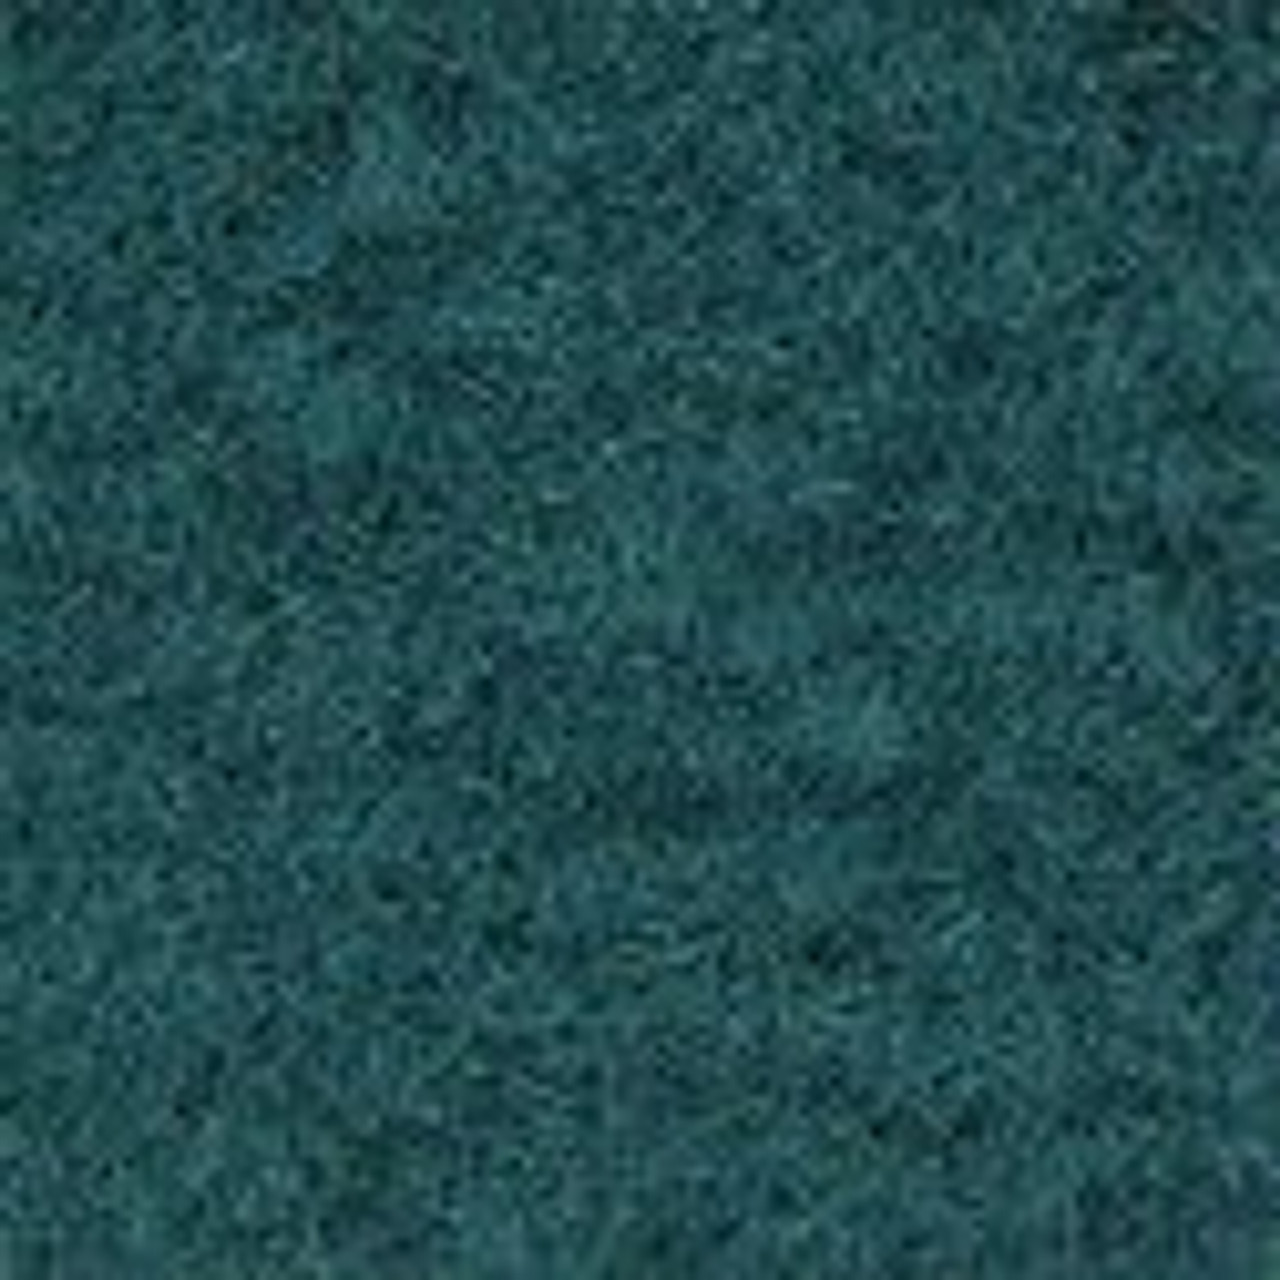 AQUA-TURF Teal Marine Carpet 72""